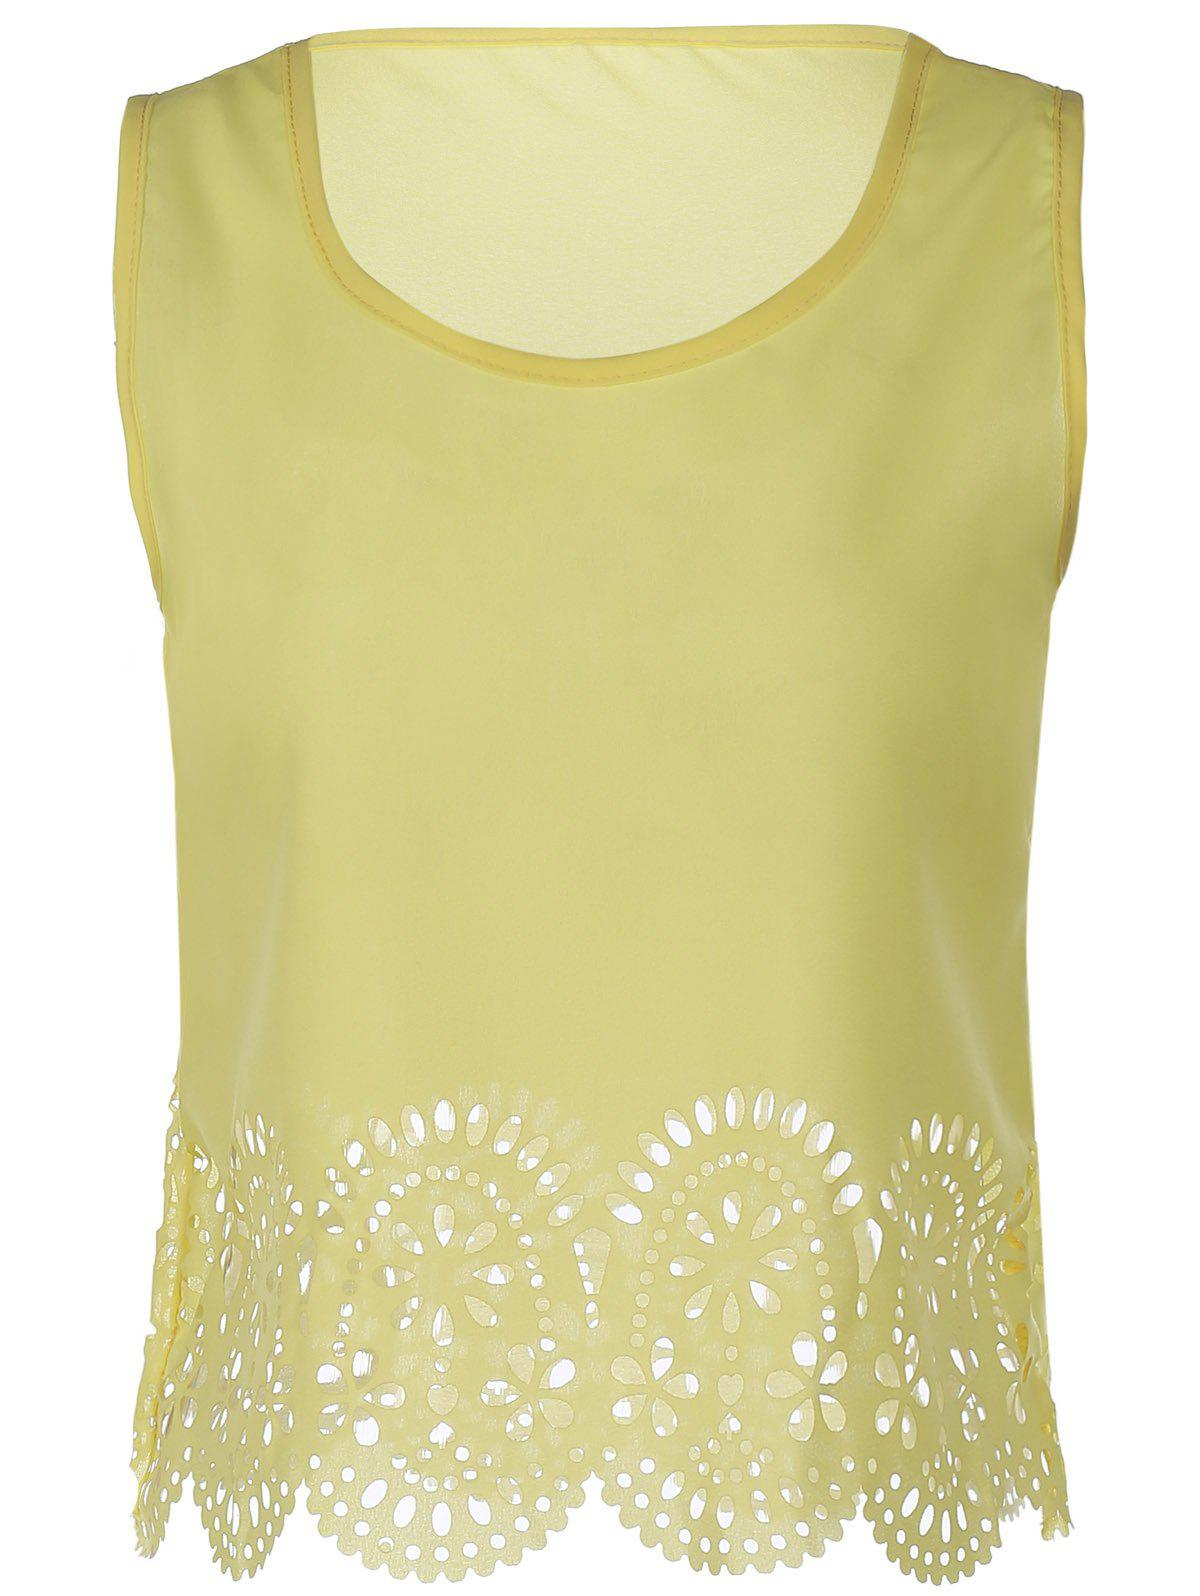 Chic Sleeveless Scoop Neck Solid Color Hollow Out Women's Tank Top - YELLOW M